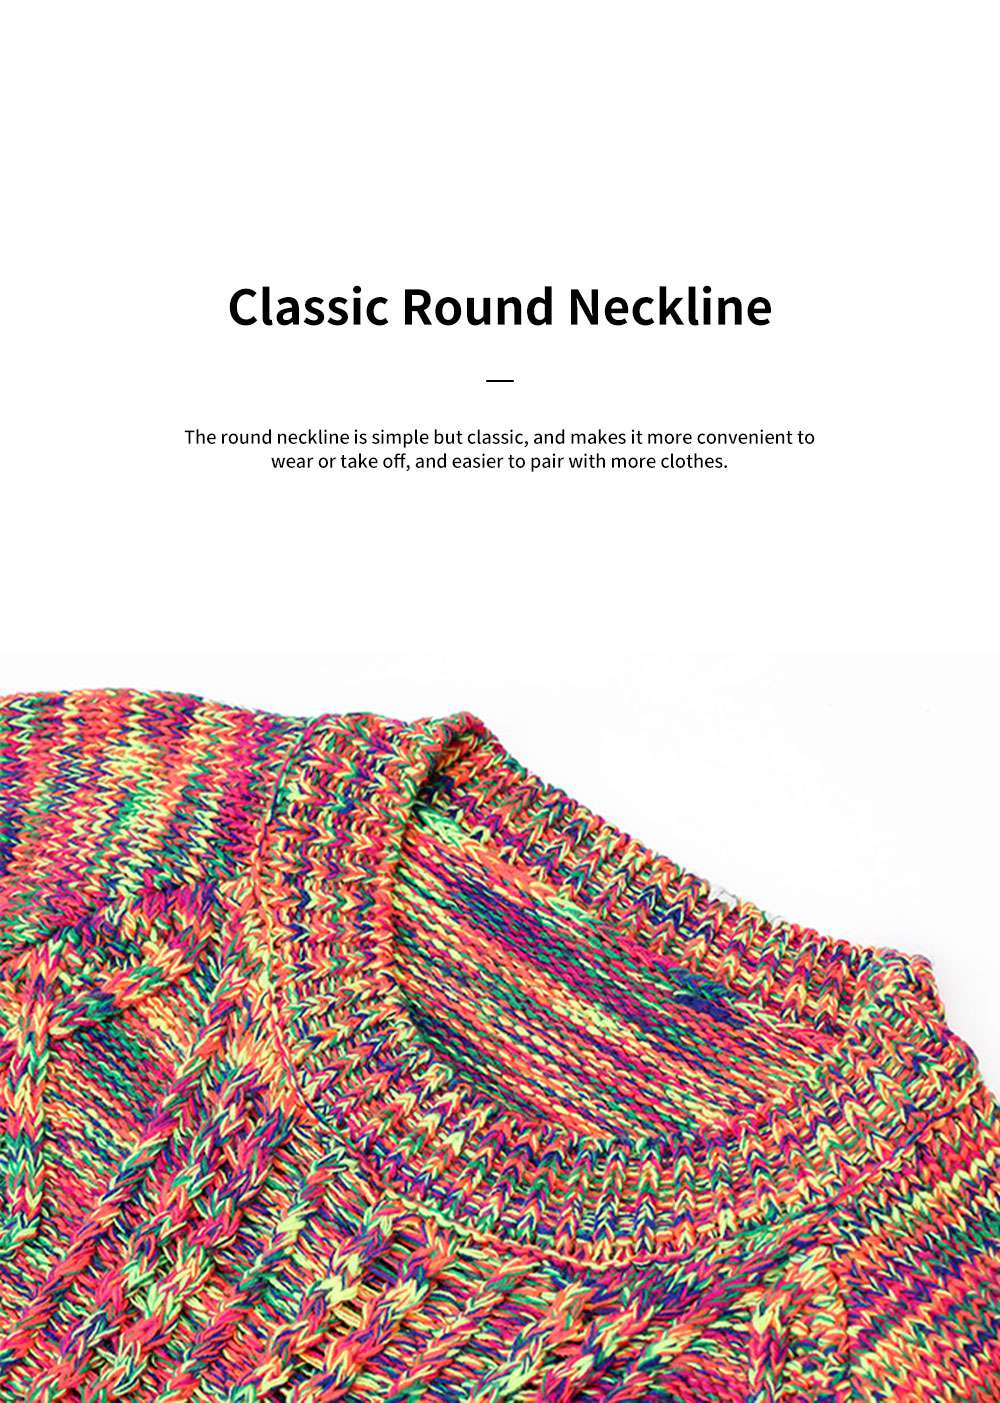 ELFSACK Rainbow-Colored Knitwear Lightweight Pullover Round Neck Sweater for Women in Autumn and Winter 5